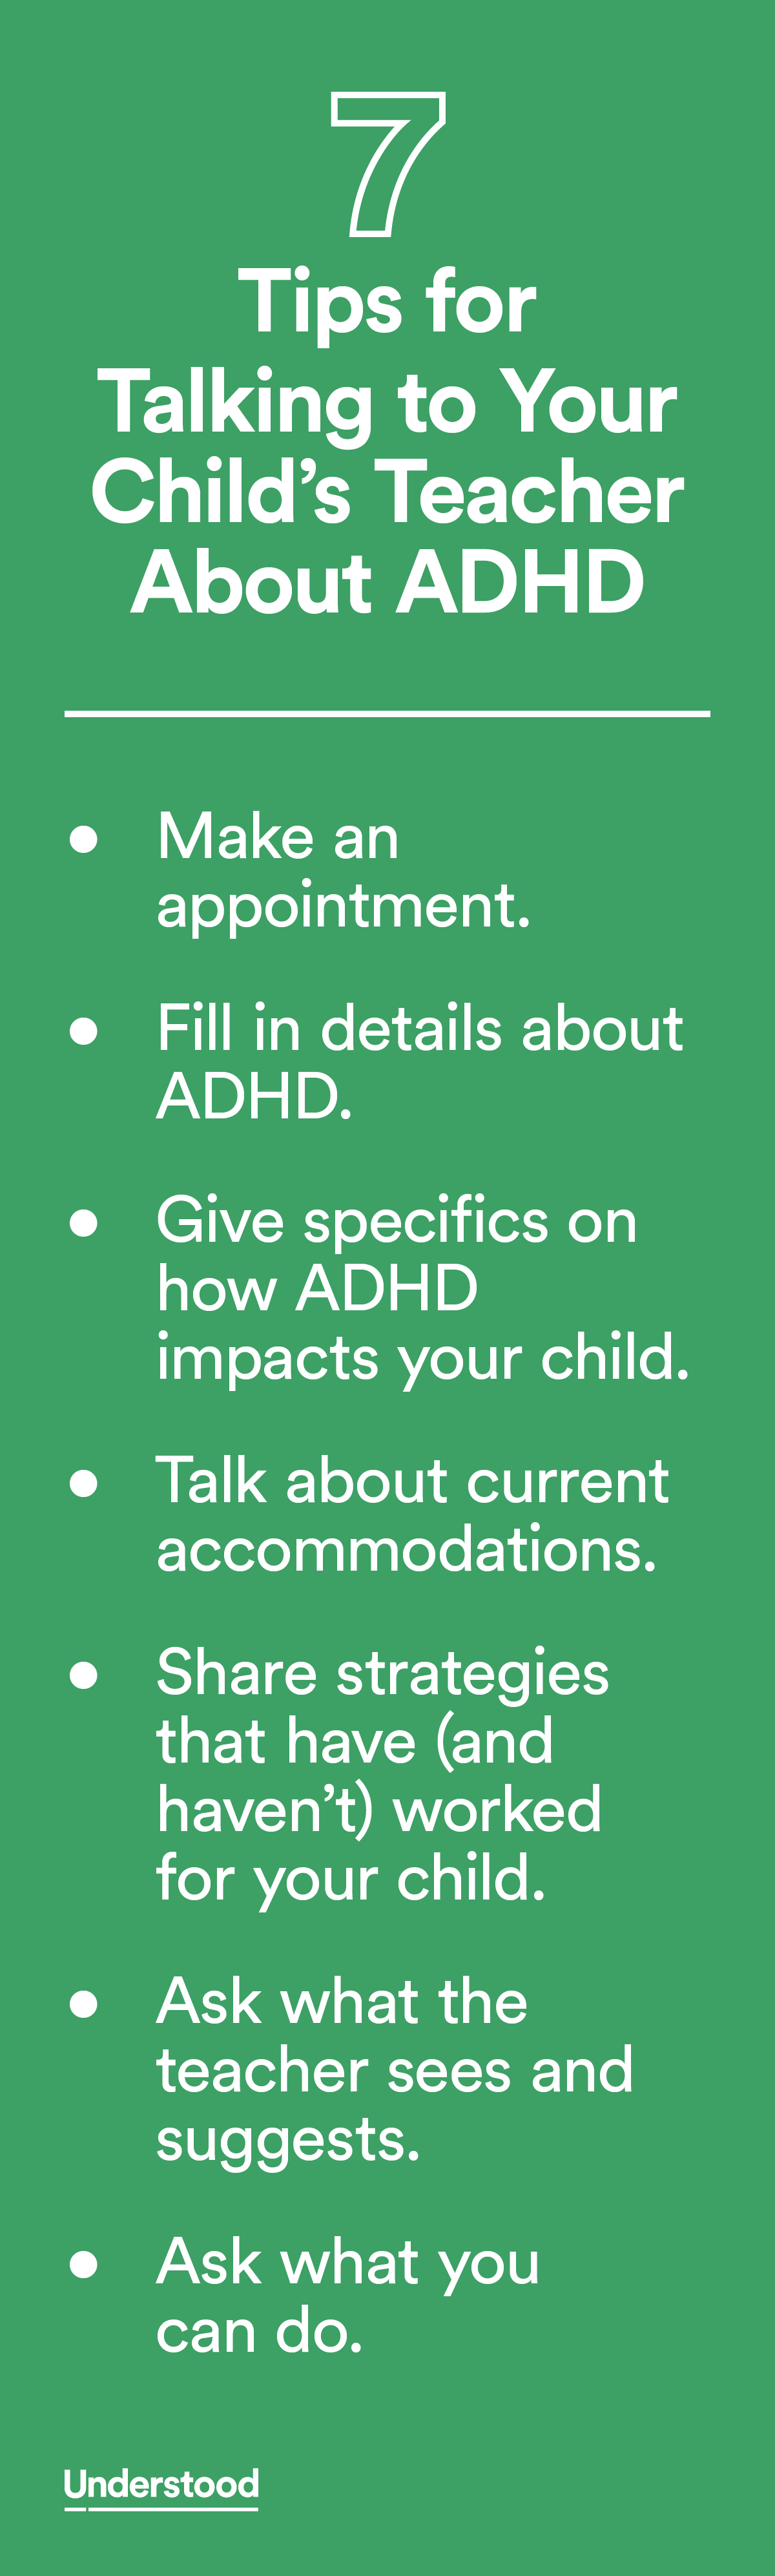 When your child has ADHD (also known as ADD), it's important to talk with his teacher about how it affects him. By knowing which ADHD symptoms your child struggles with, the teacher can find ways to help him be successful in the classroom.